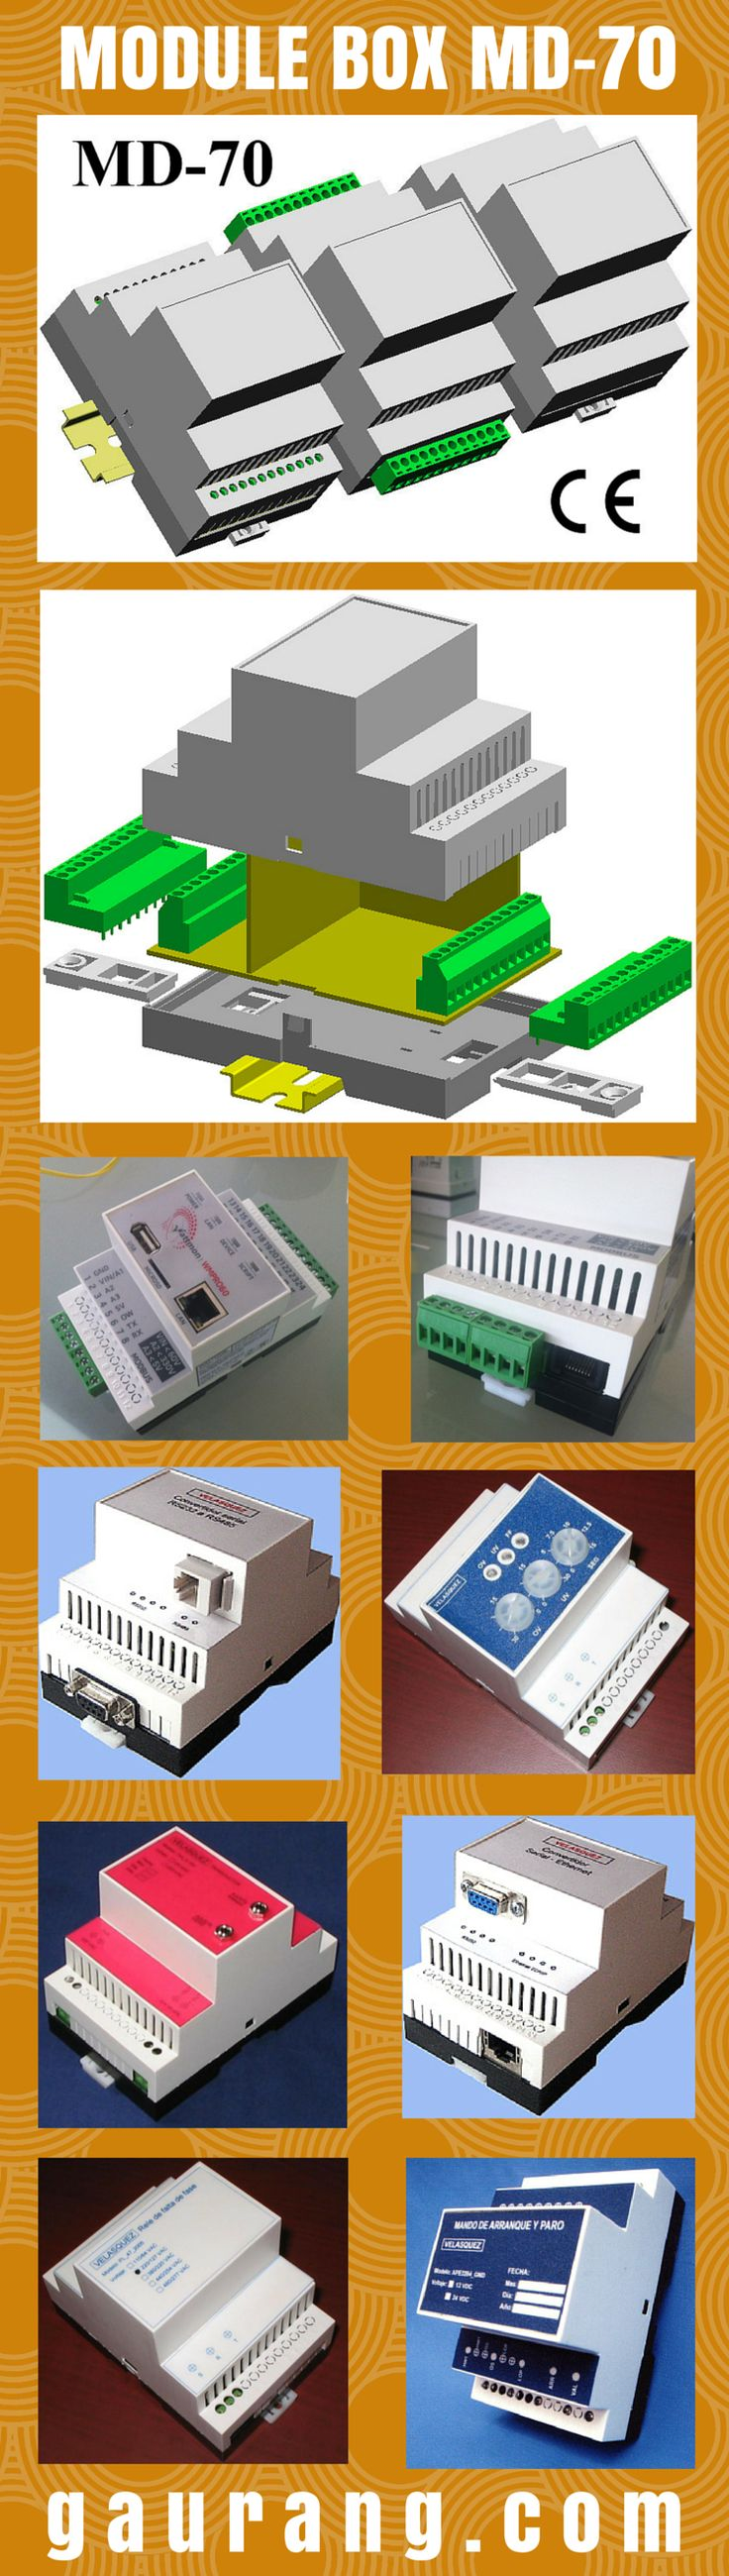 DIN Rail Modular Enclosures offers packaging to wide range of applications from Instrumentation, automotive industry to home/building automation, Relays, Timers, Transducers, Transmitters, Thermostat, Sensing and Monitoring Devices. Knockout blanks for individual terminal configuration. #GaurangEnclosures #DinRailEnclosures #PlasticEnclosures #ModularEnclosures #WallMountEnclosures #ElectronicEnclosures #Enclosures #Boxes #Cases #ElectricalEnclosures Mfg: www.gaurang.com